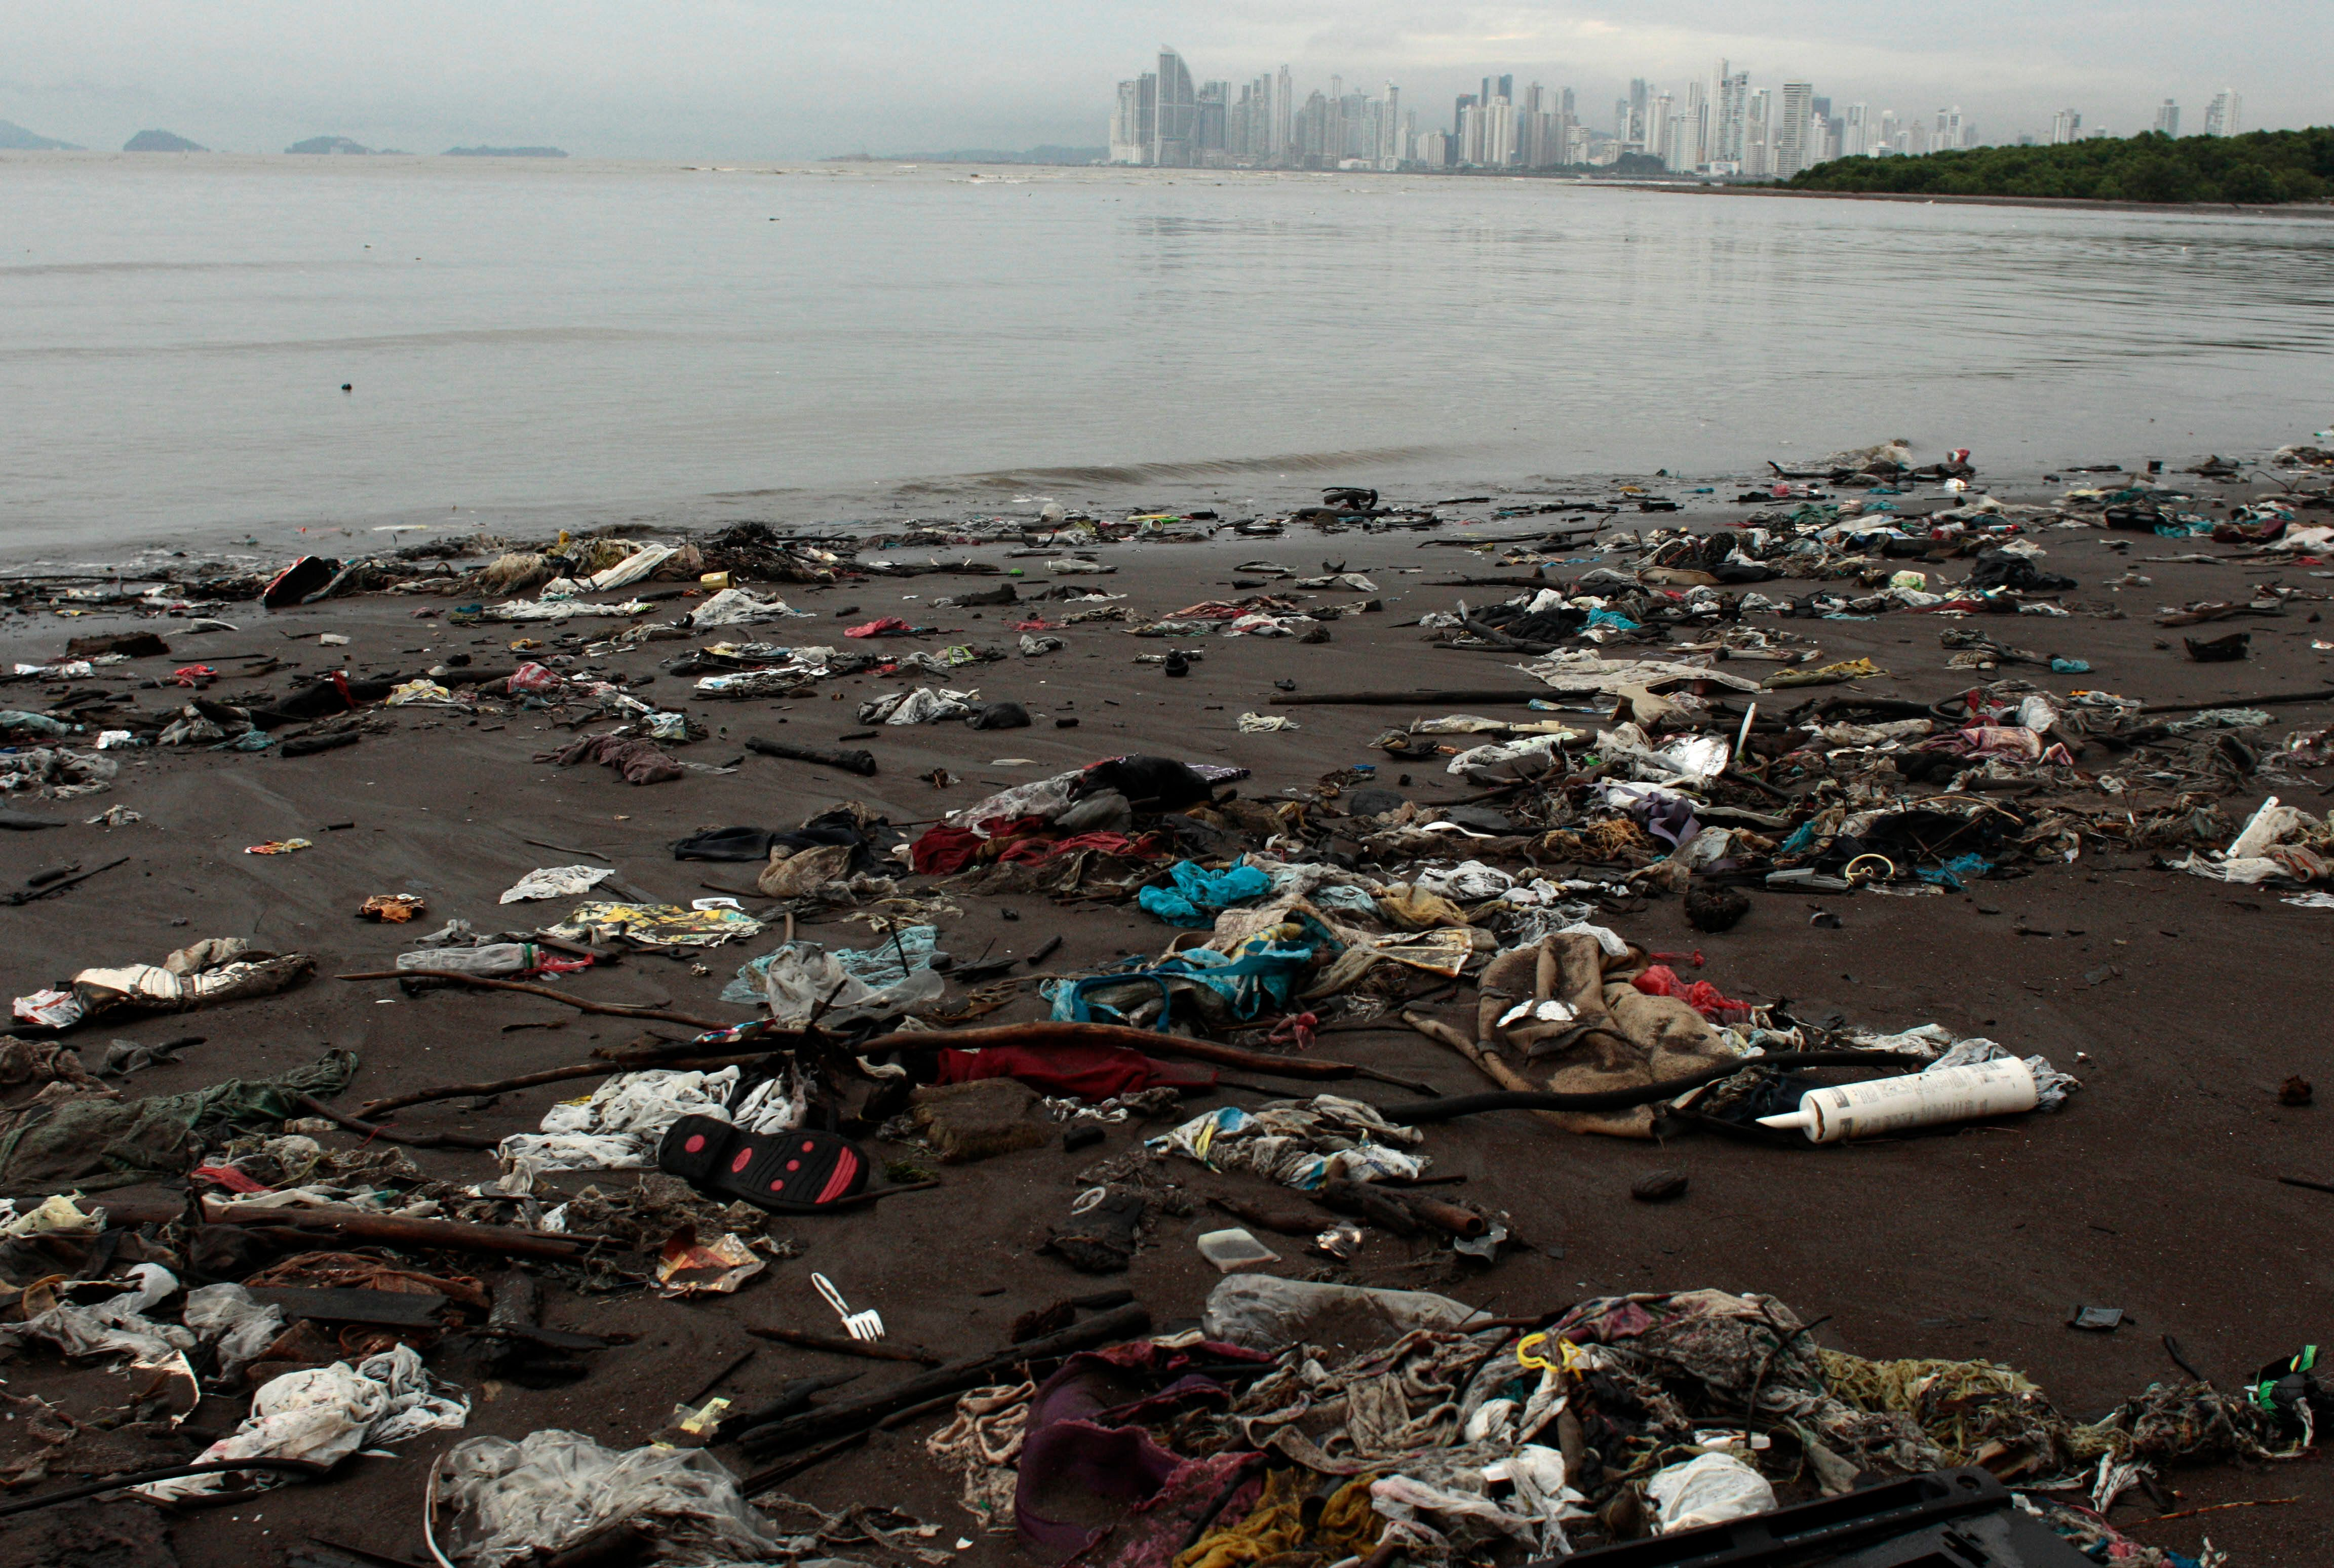 Panama on Saturday became the first Central American nation to ban single-use plastic bags to try to curb pollution. Trash li